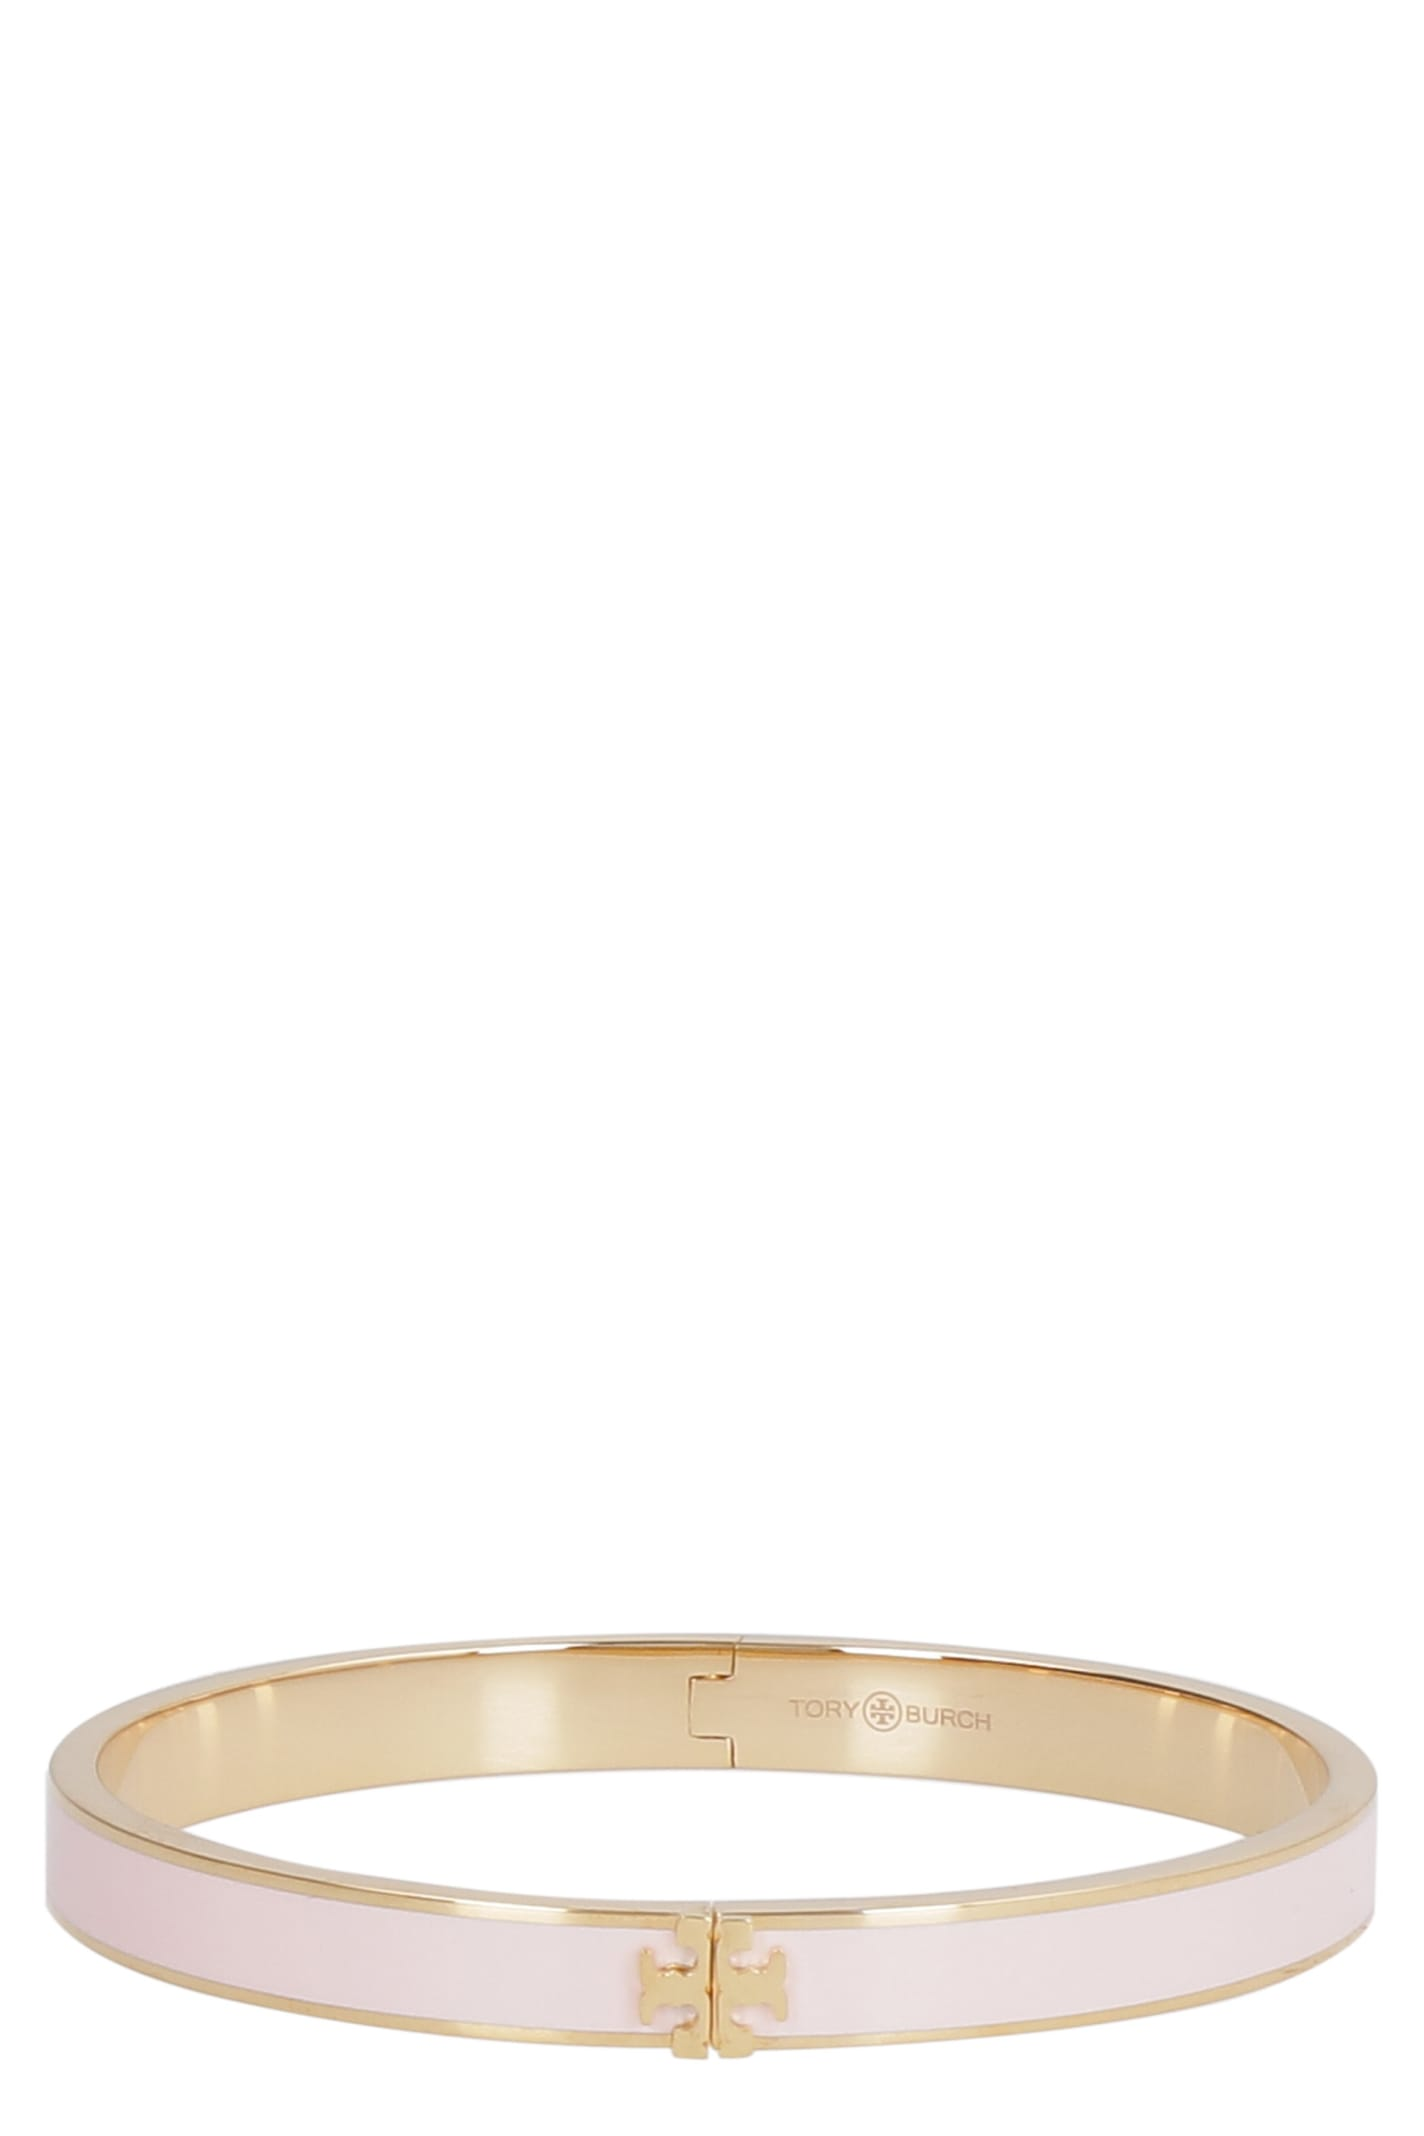 Tory Burch Kira Enamelled Brass Bracelet